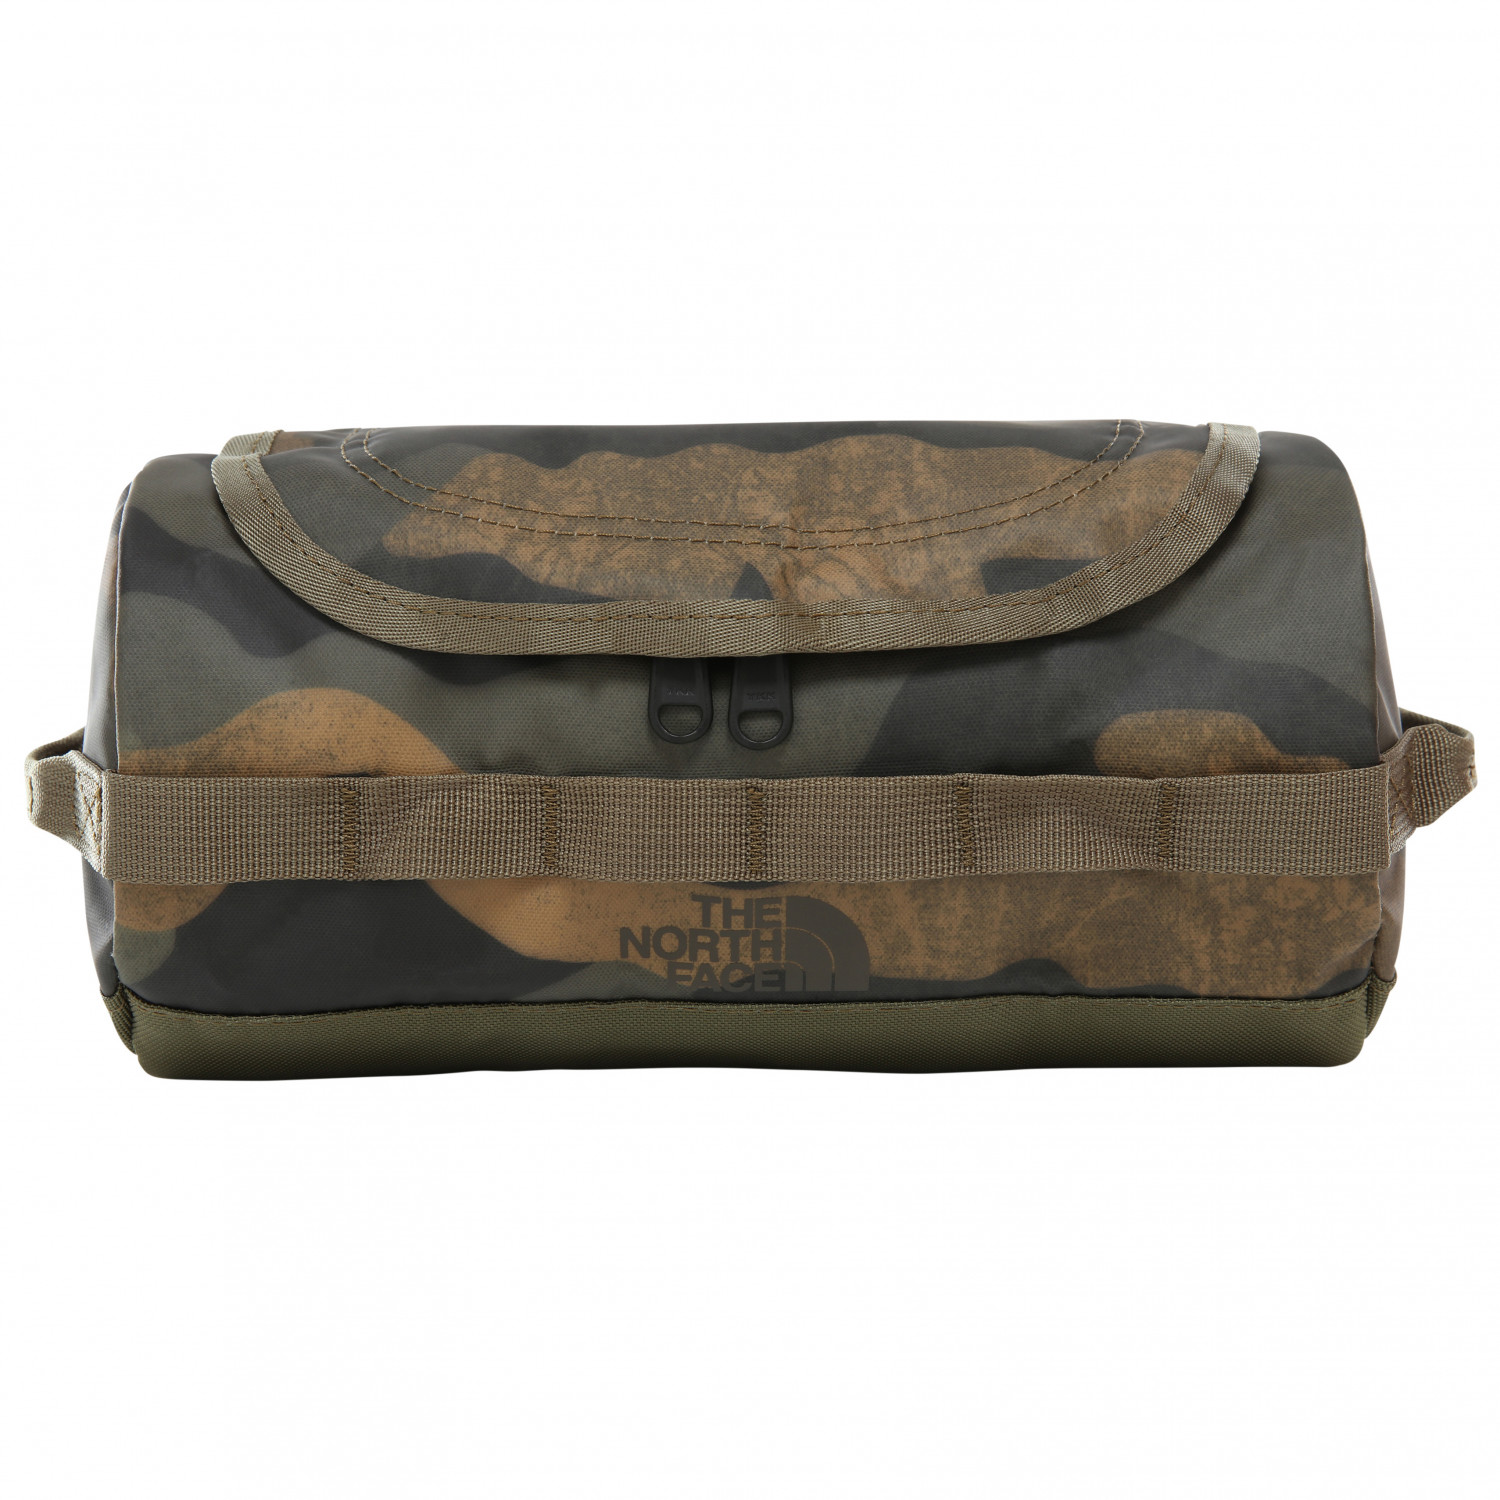 015bdb995 The North Face - Base Camp Travel Canister - Wash bag - Burnt Olive Green  Waxed Camo Print / Burnt Olive Green | 3,5 l - S